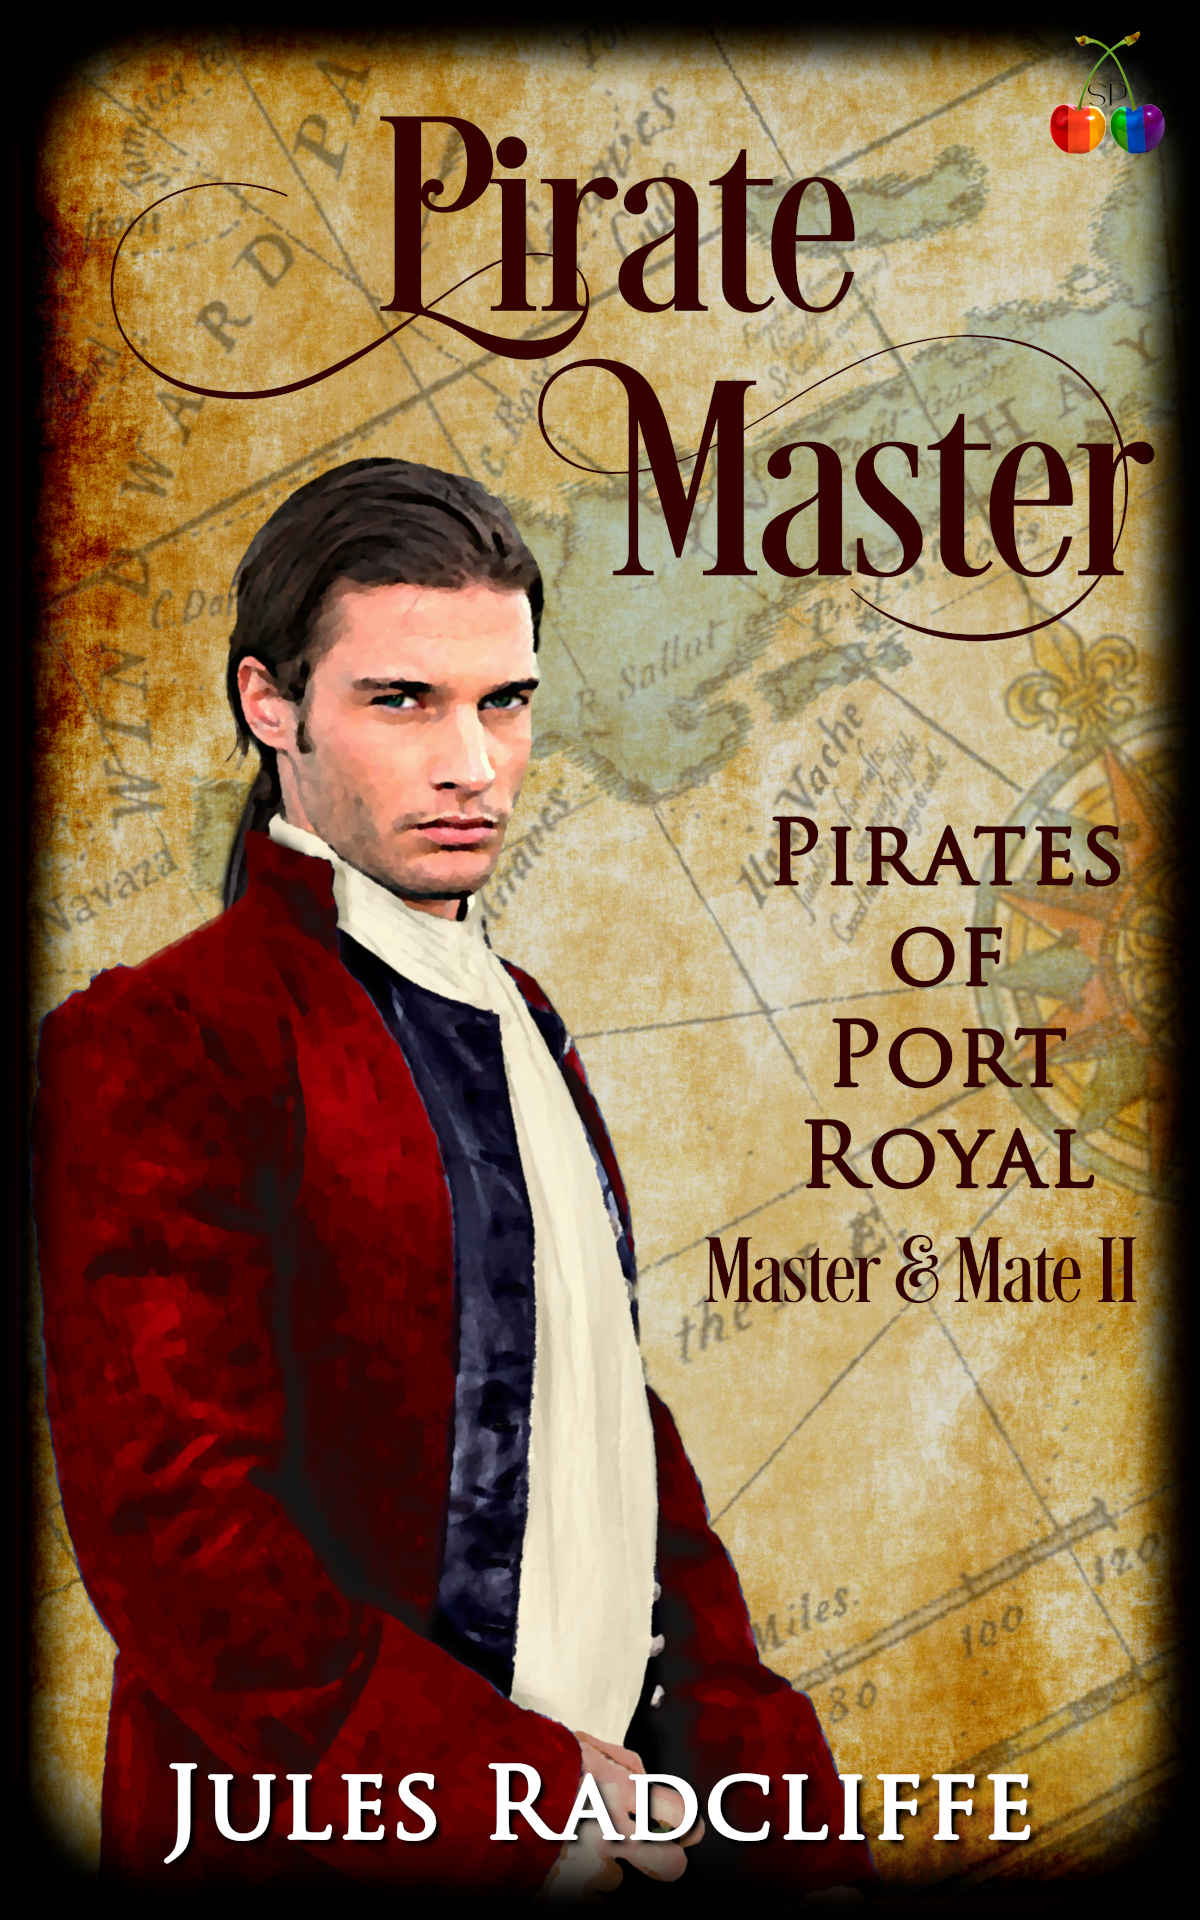 Cover of Pirate Master by Jules Radcliffe